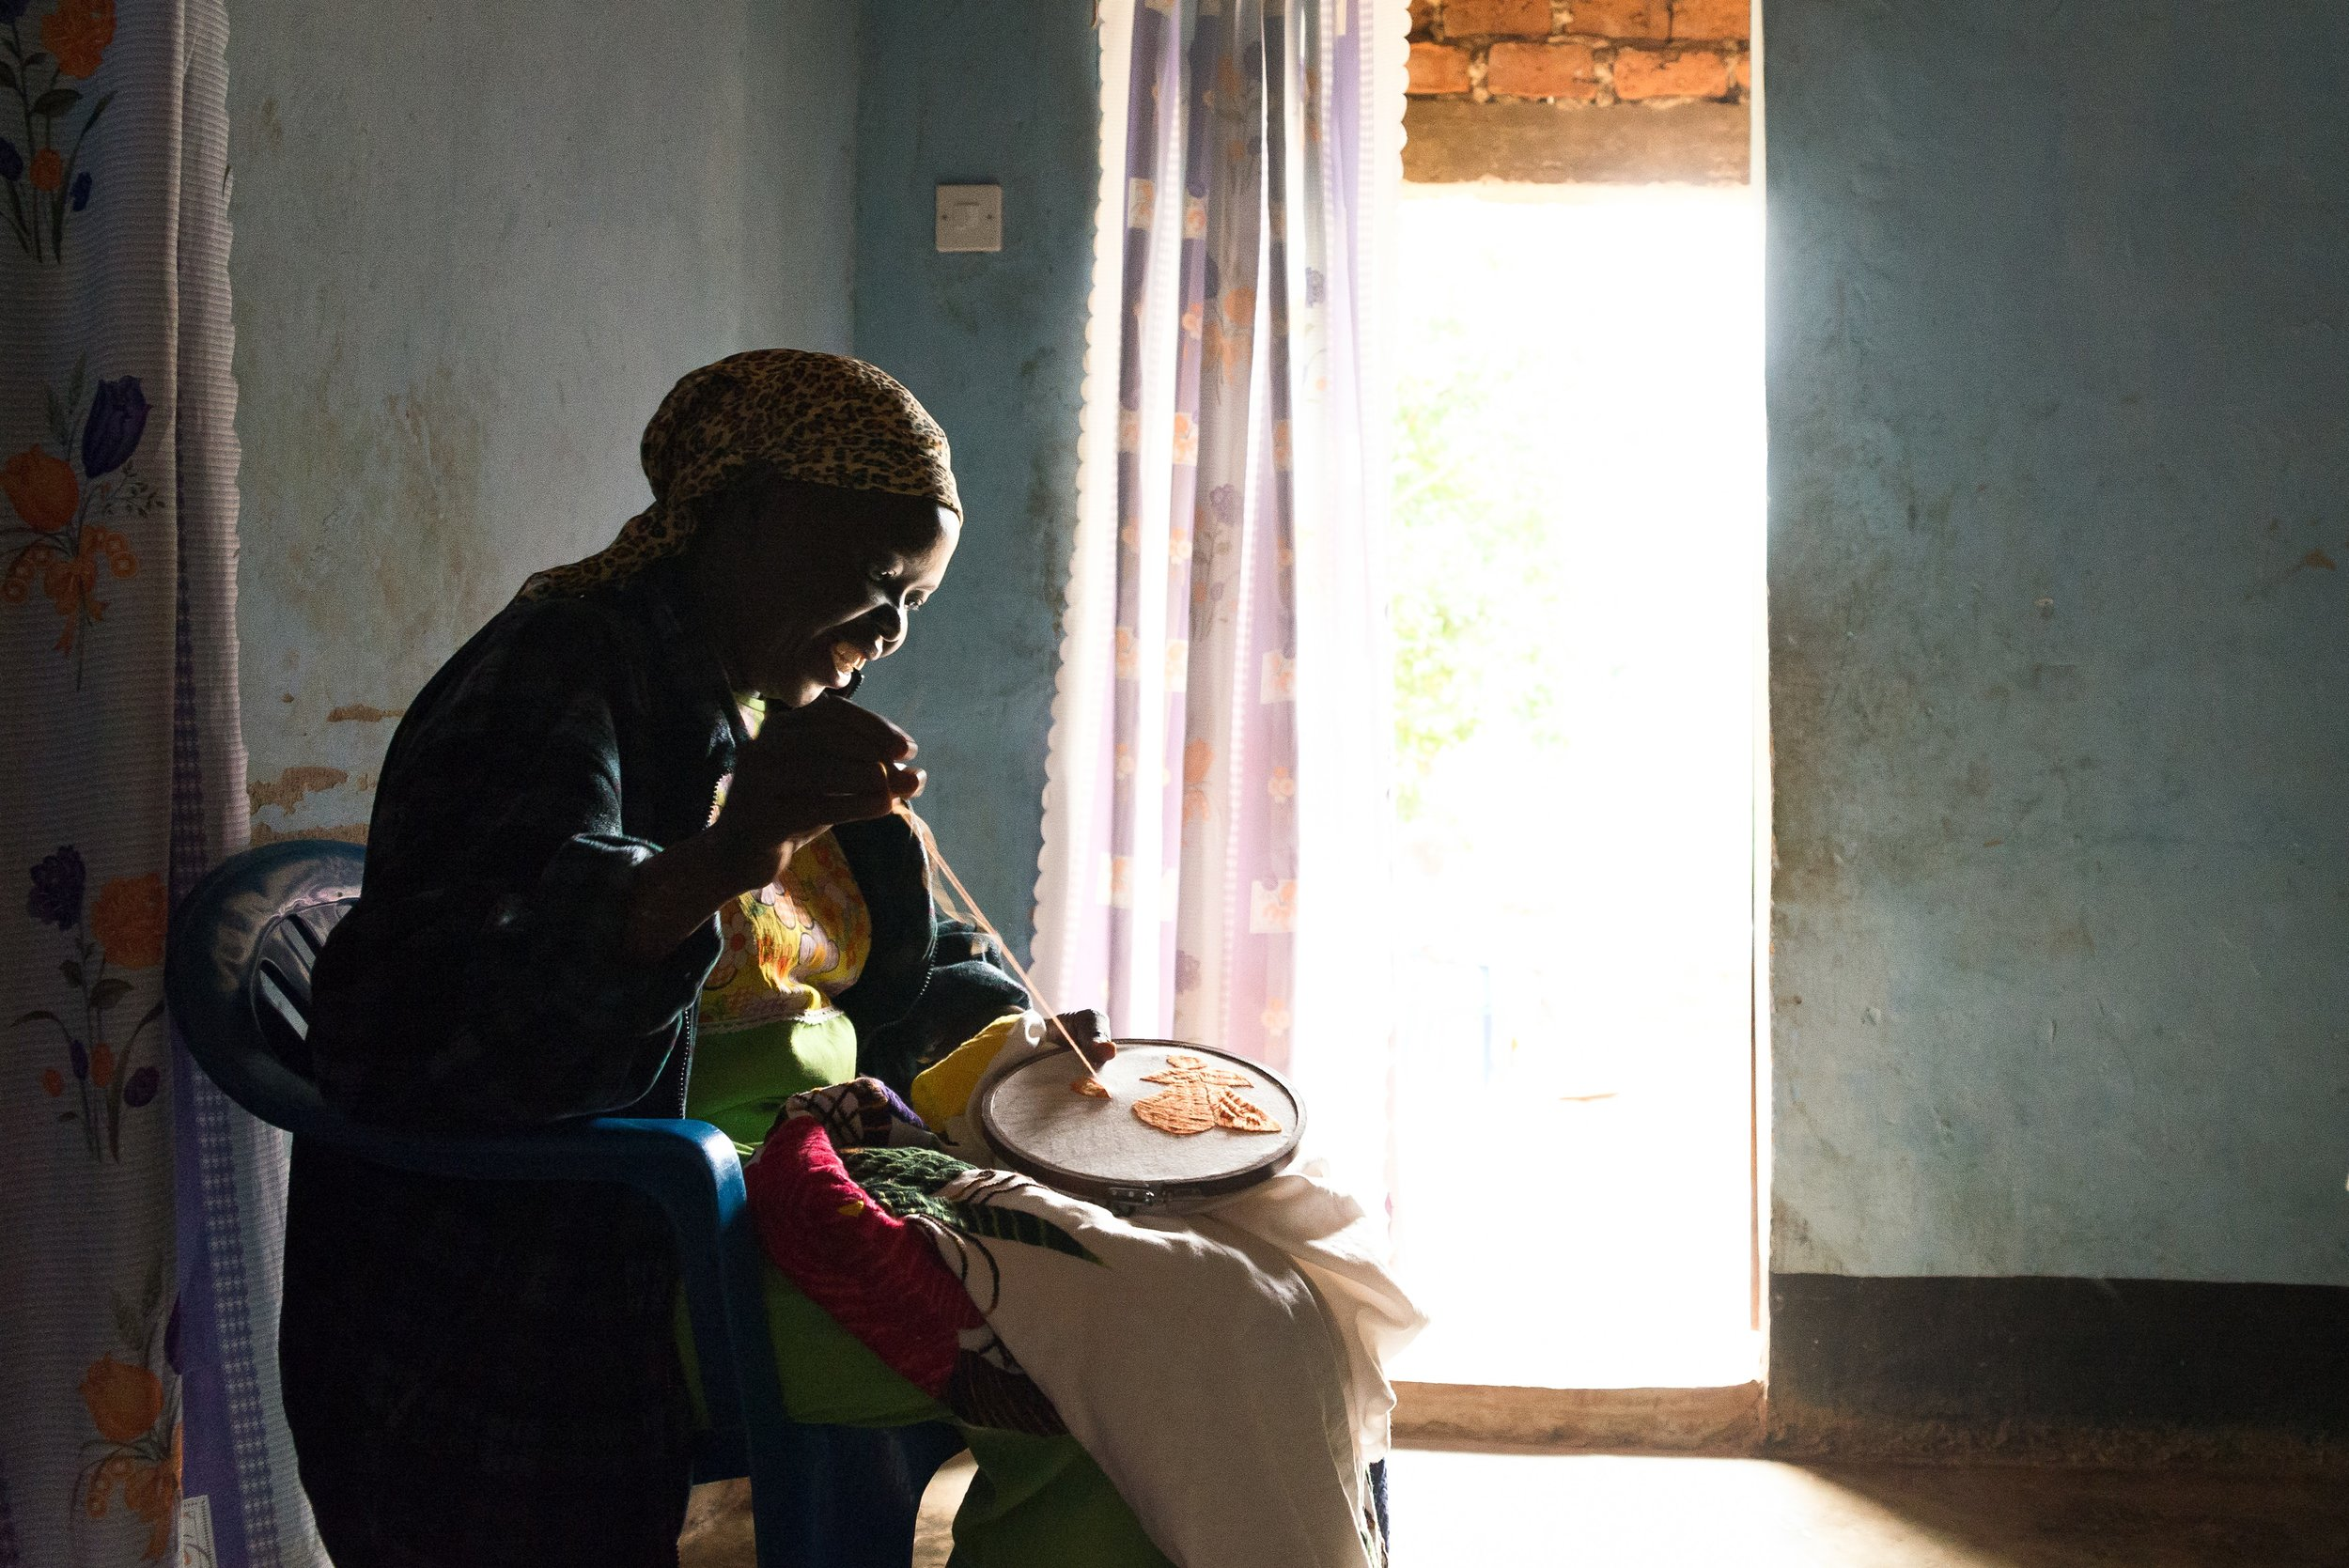 A woman embroiders a handkerchief while sharing her story of fleeing South Sudan ten years before.